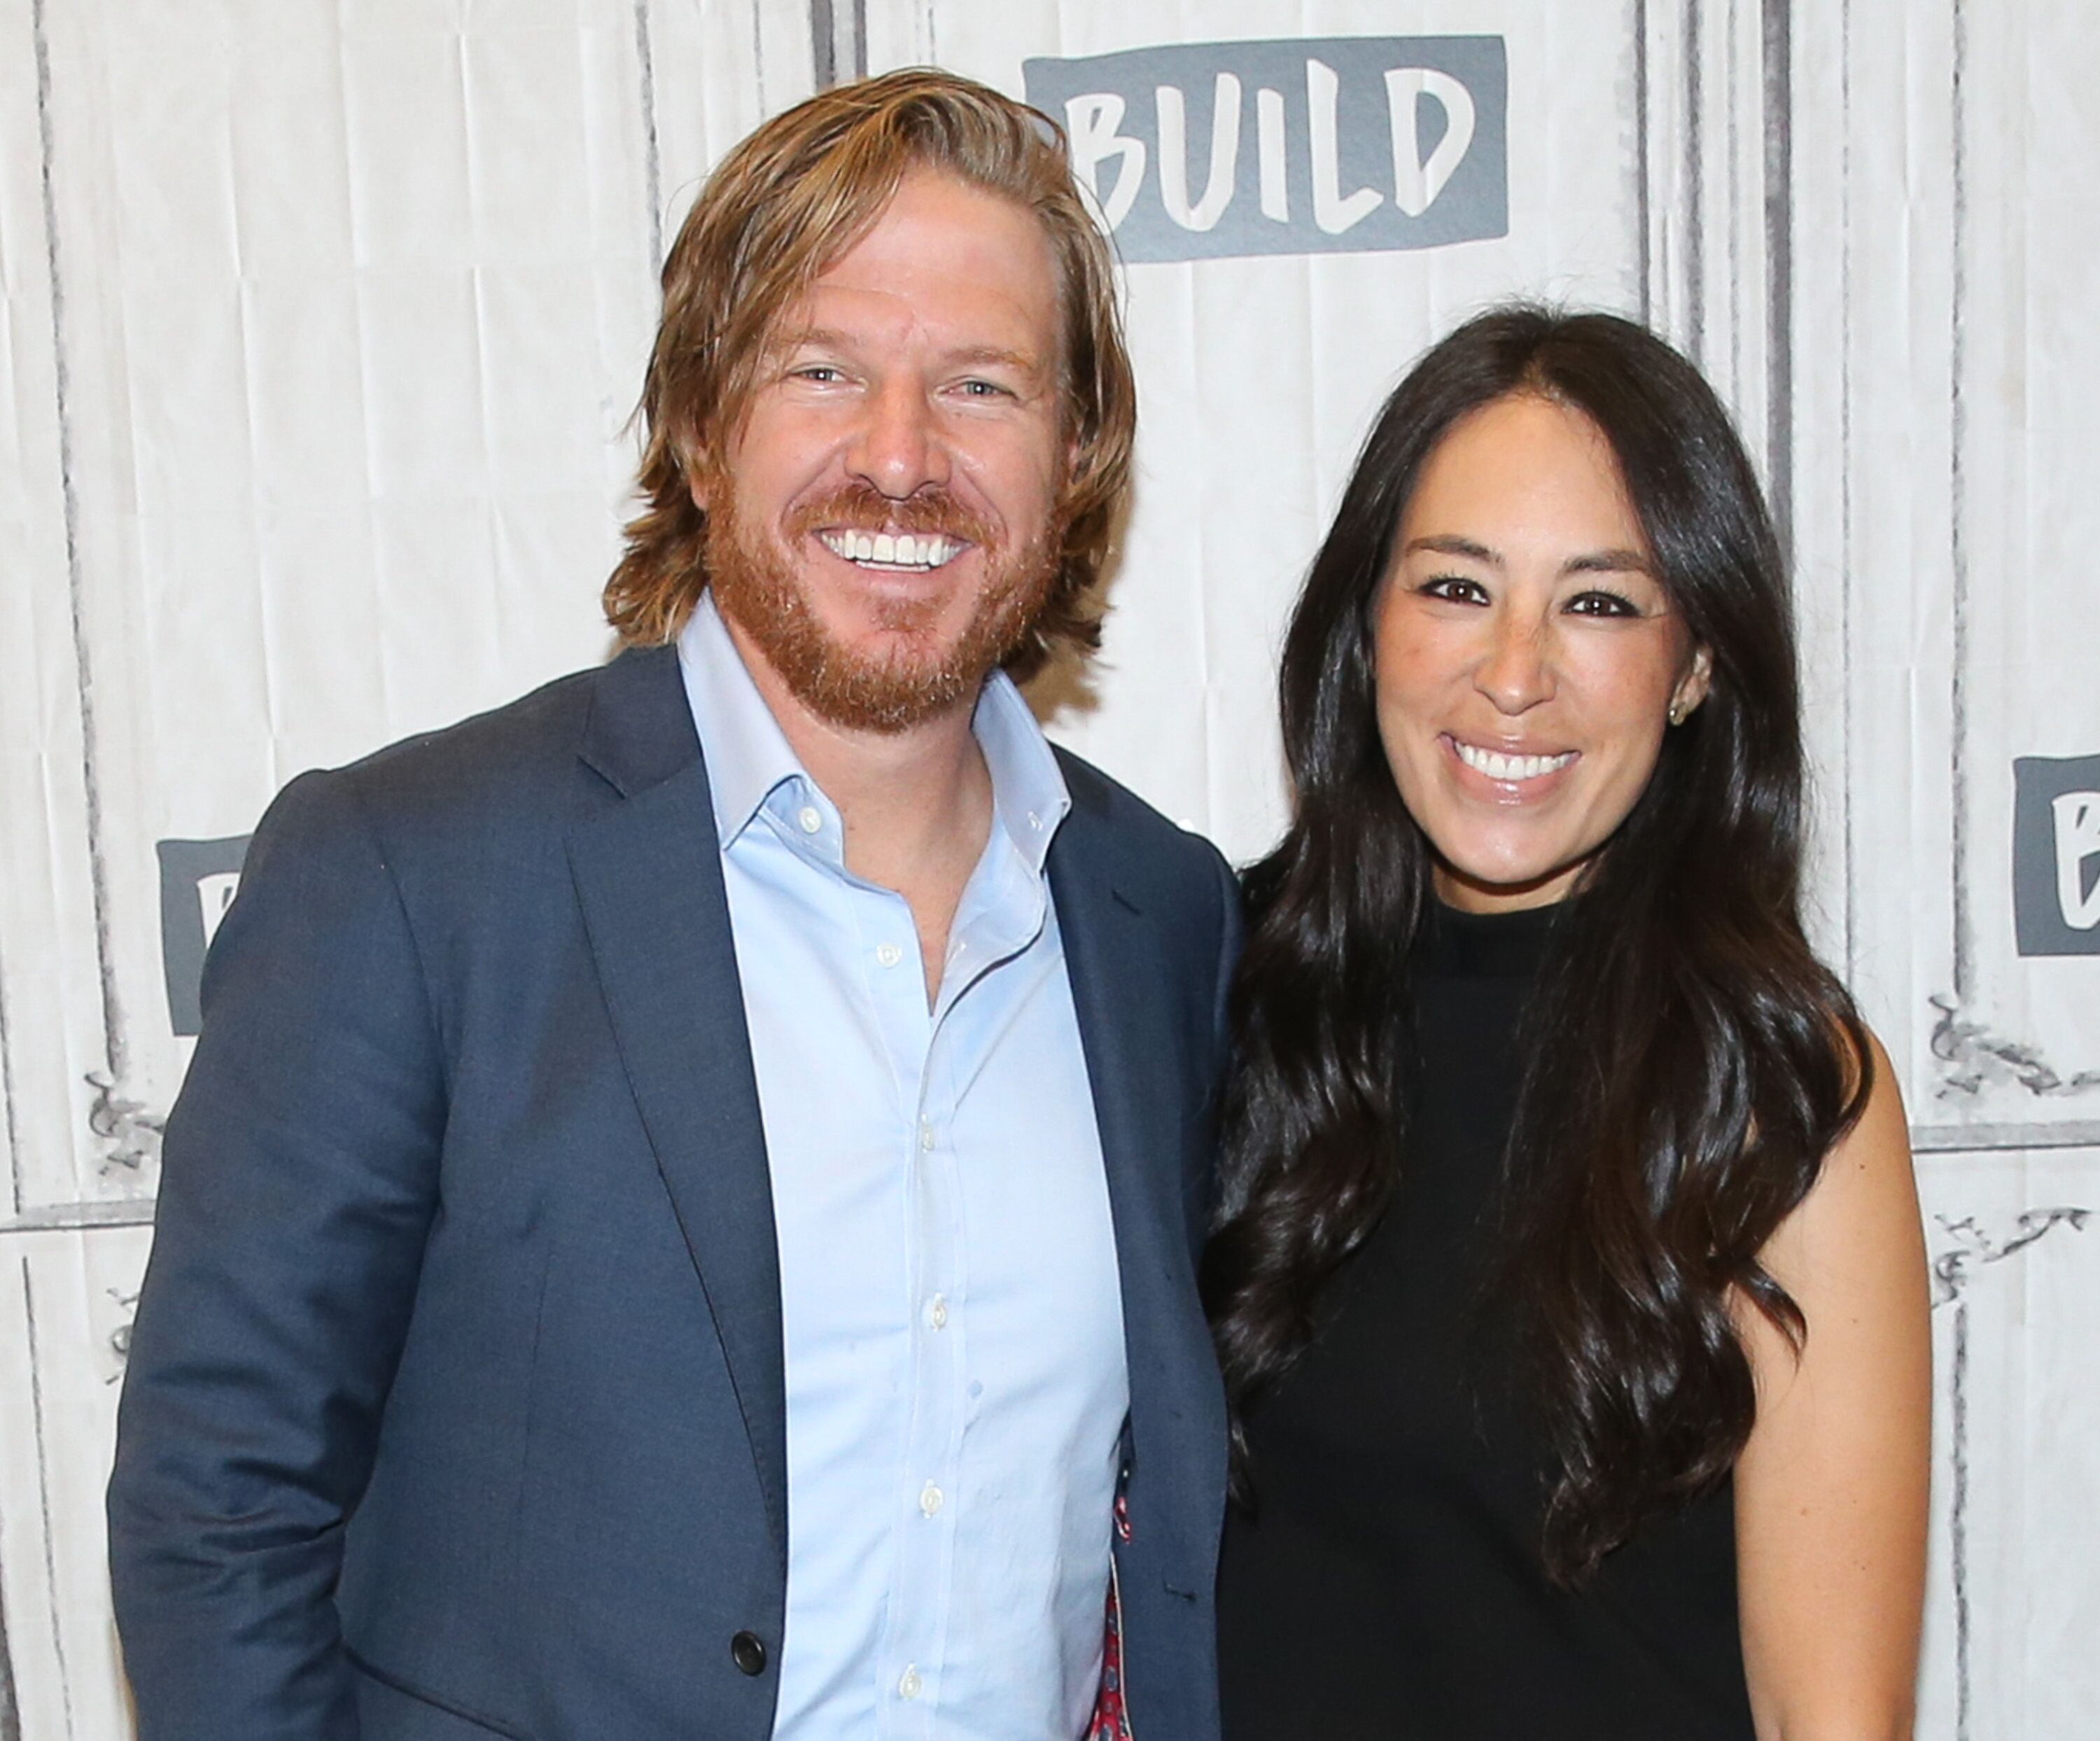 Chip Gaines and Joanna Gaines attend the Build Series at Build Studio on October 18, 2017 in New York City | Photo: Getty Images